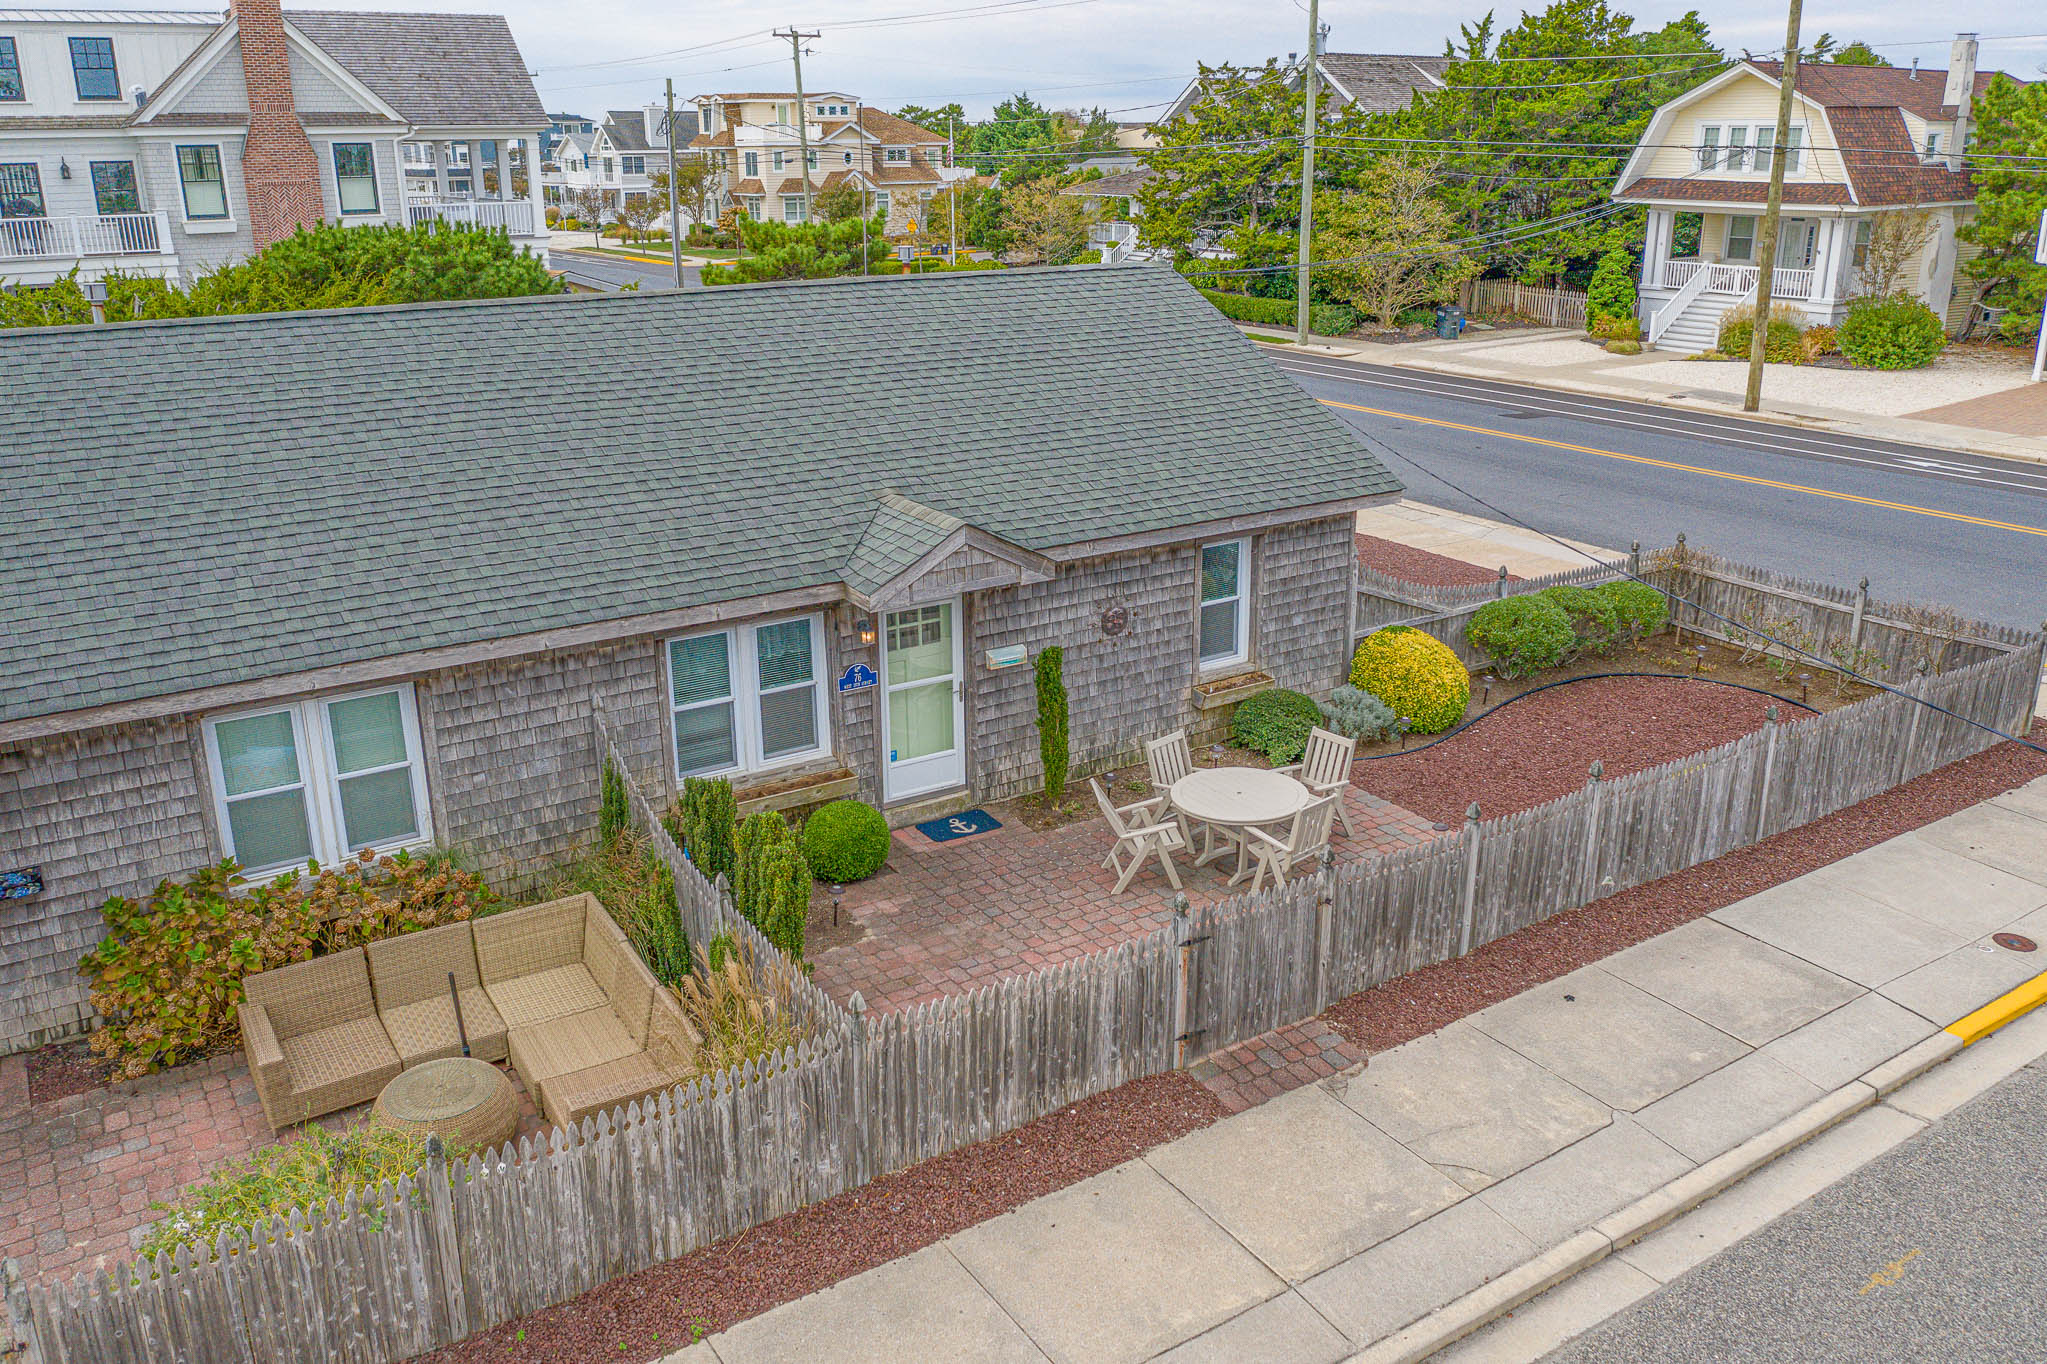 76 West 13 Street wc - Avalon, NJ